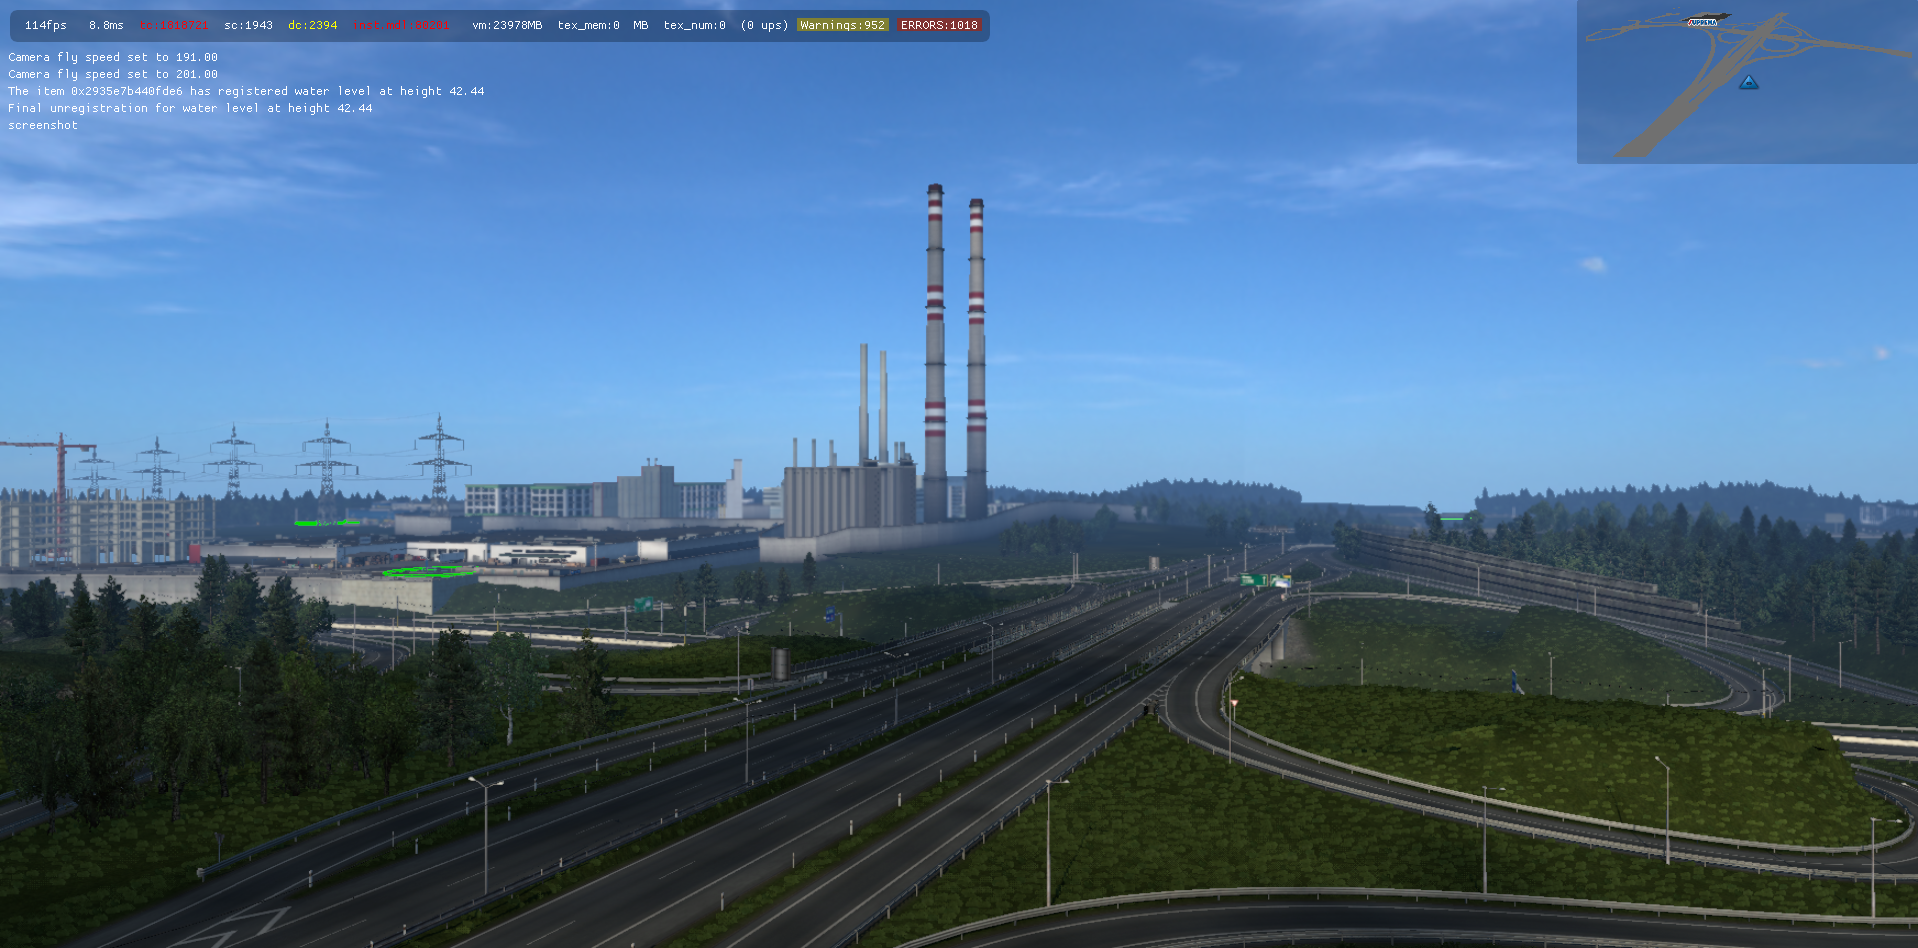 ets2_20210612_134308_00.png